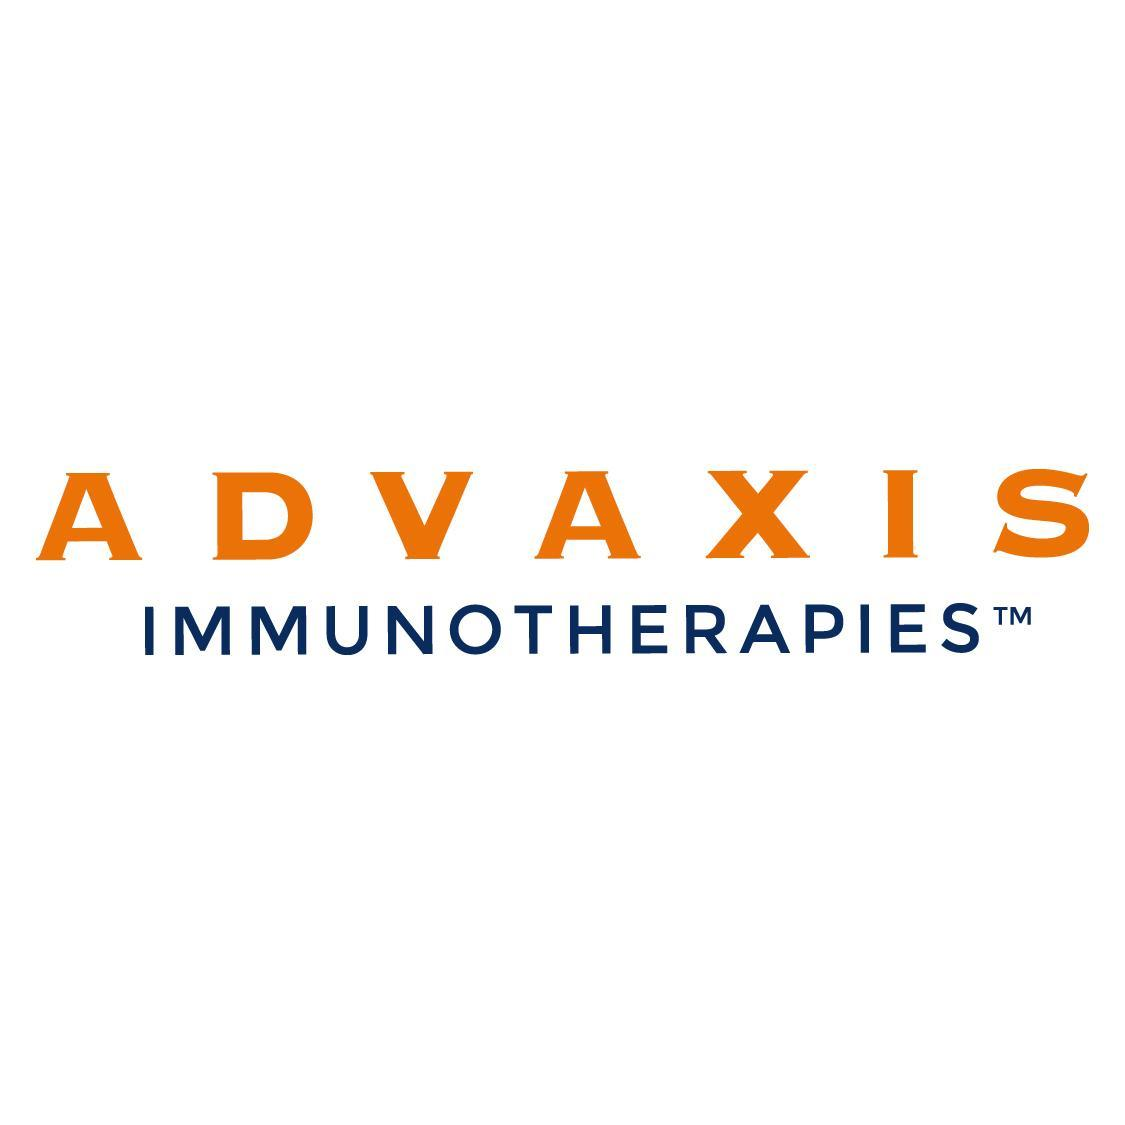 Advaxis Logo